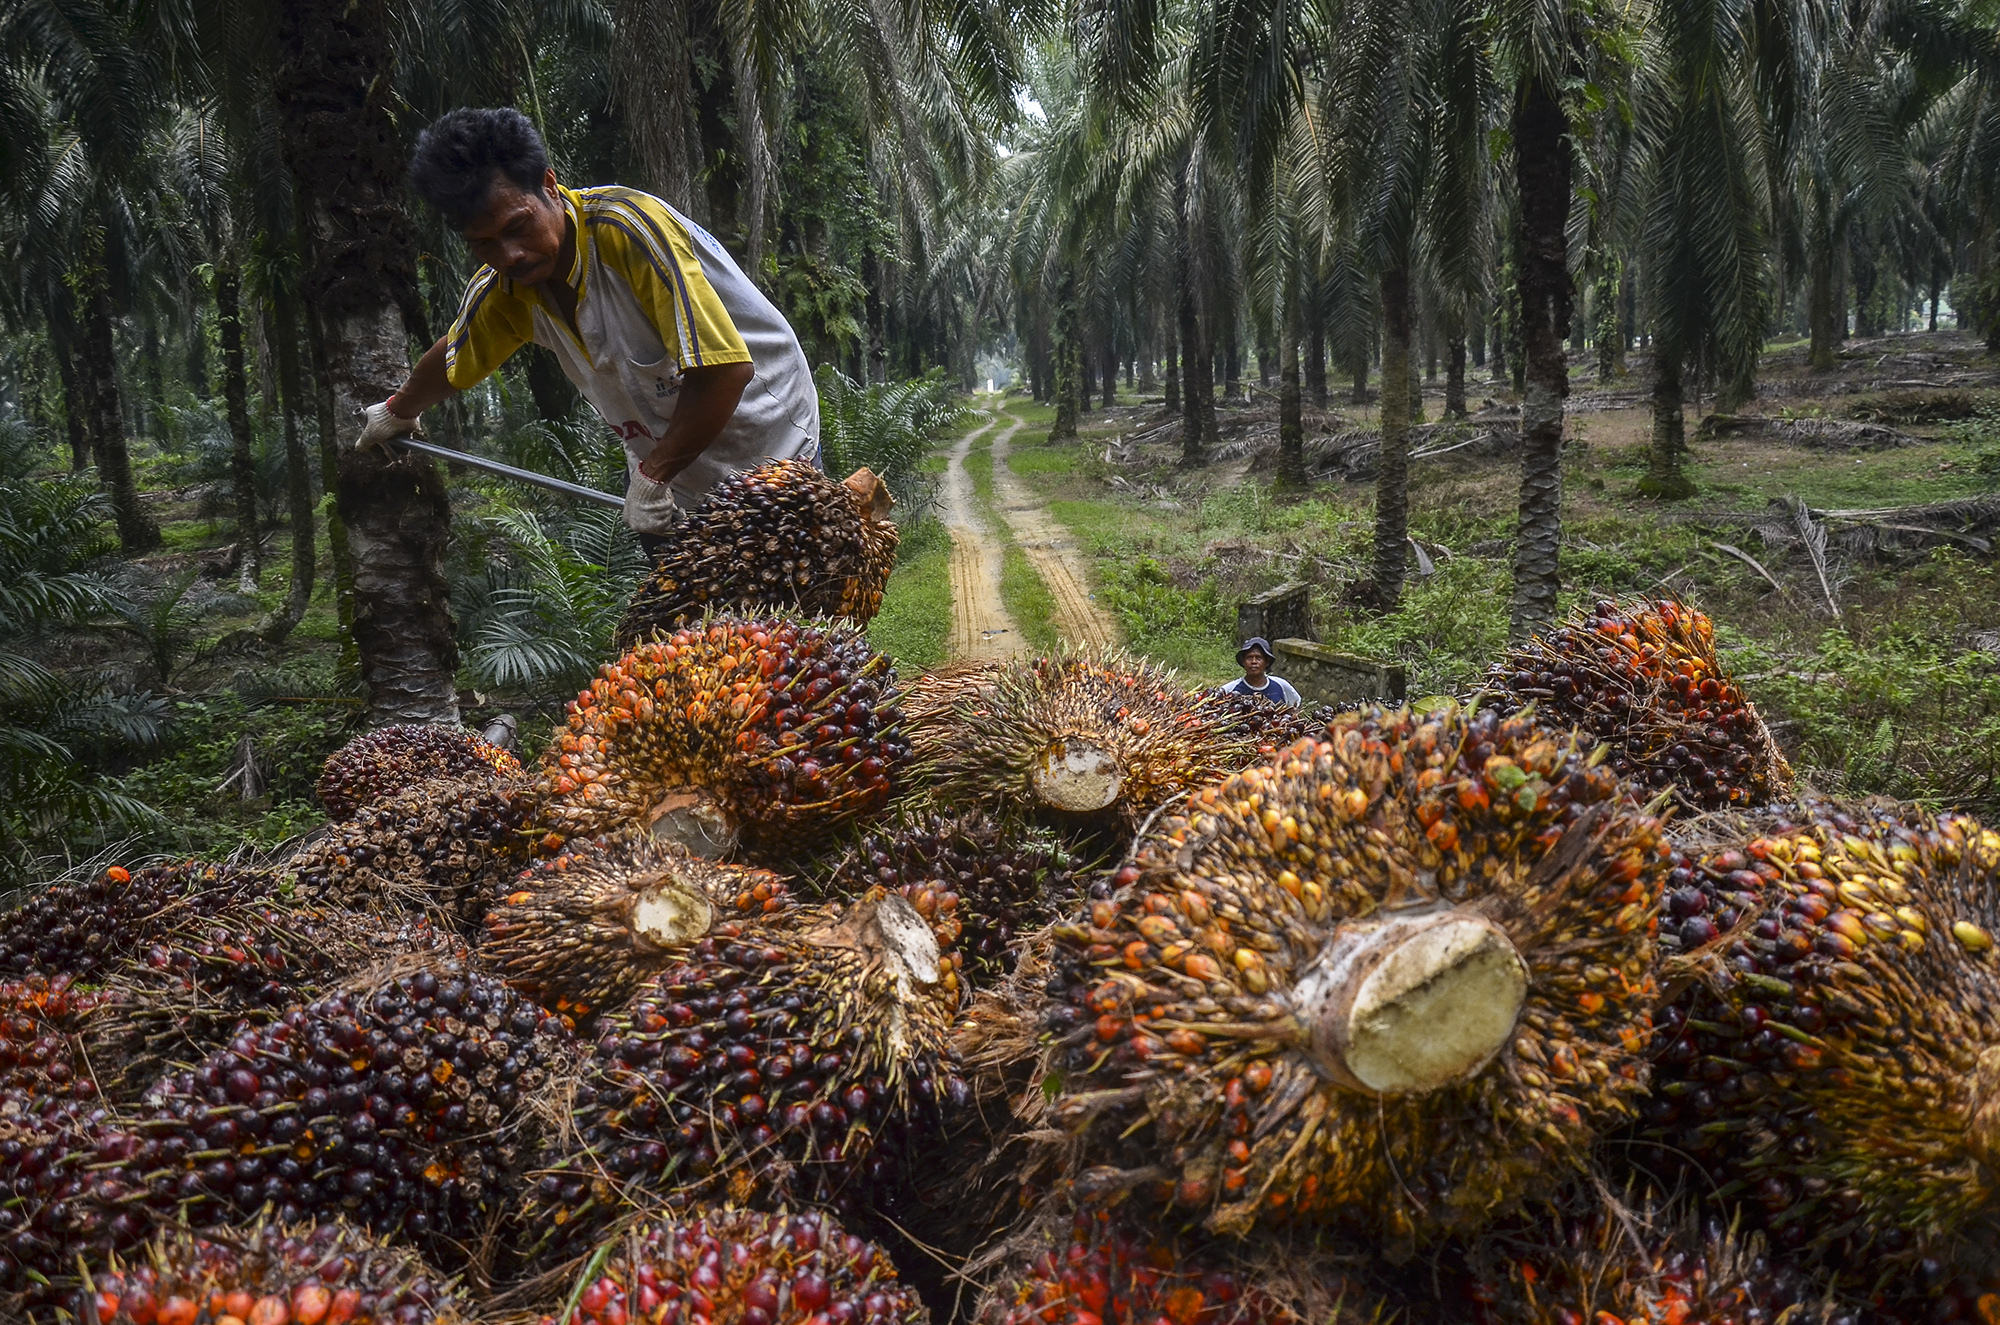 Harvested oil palm